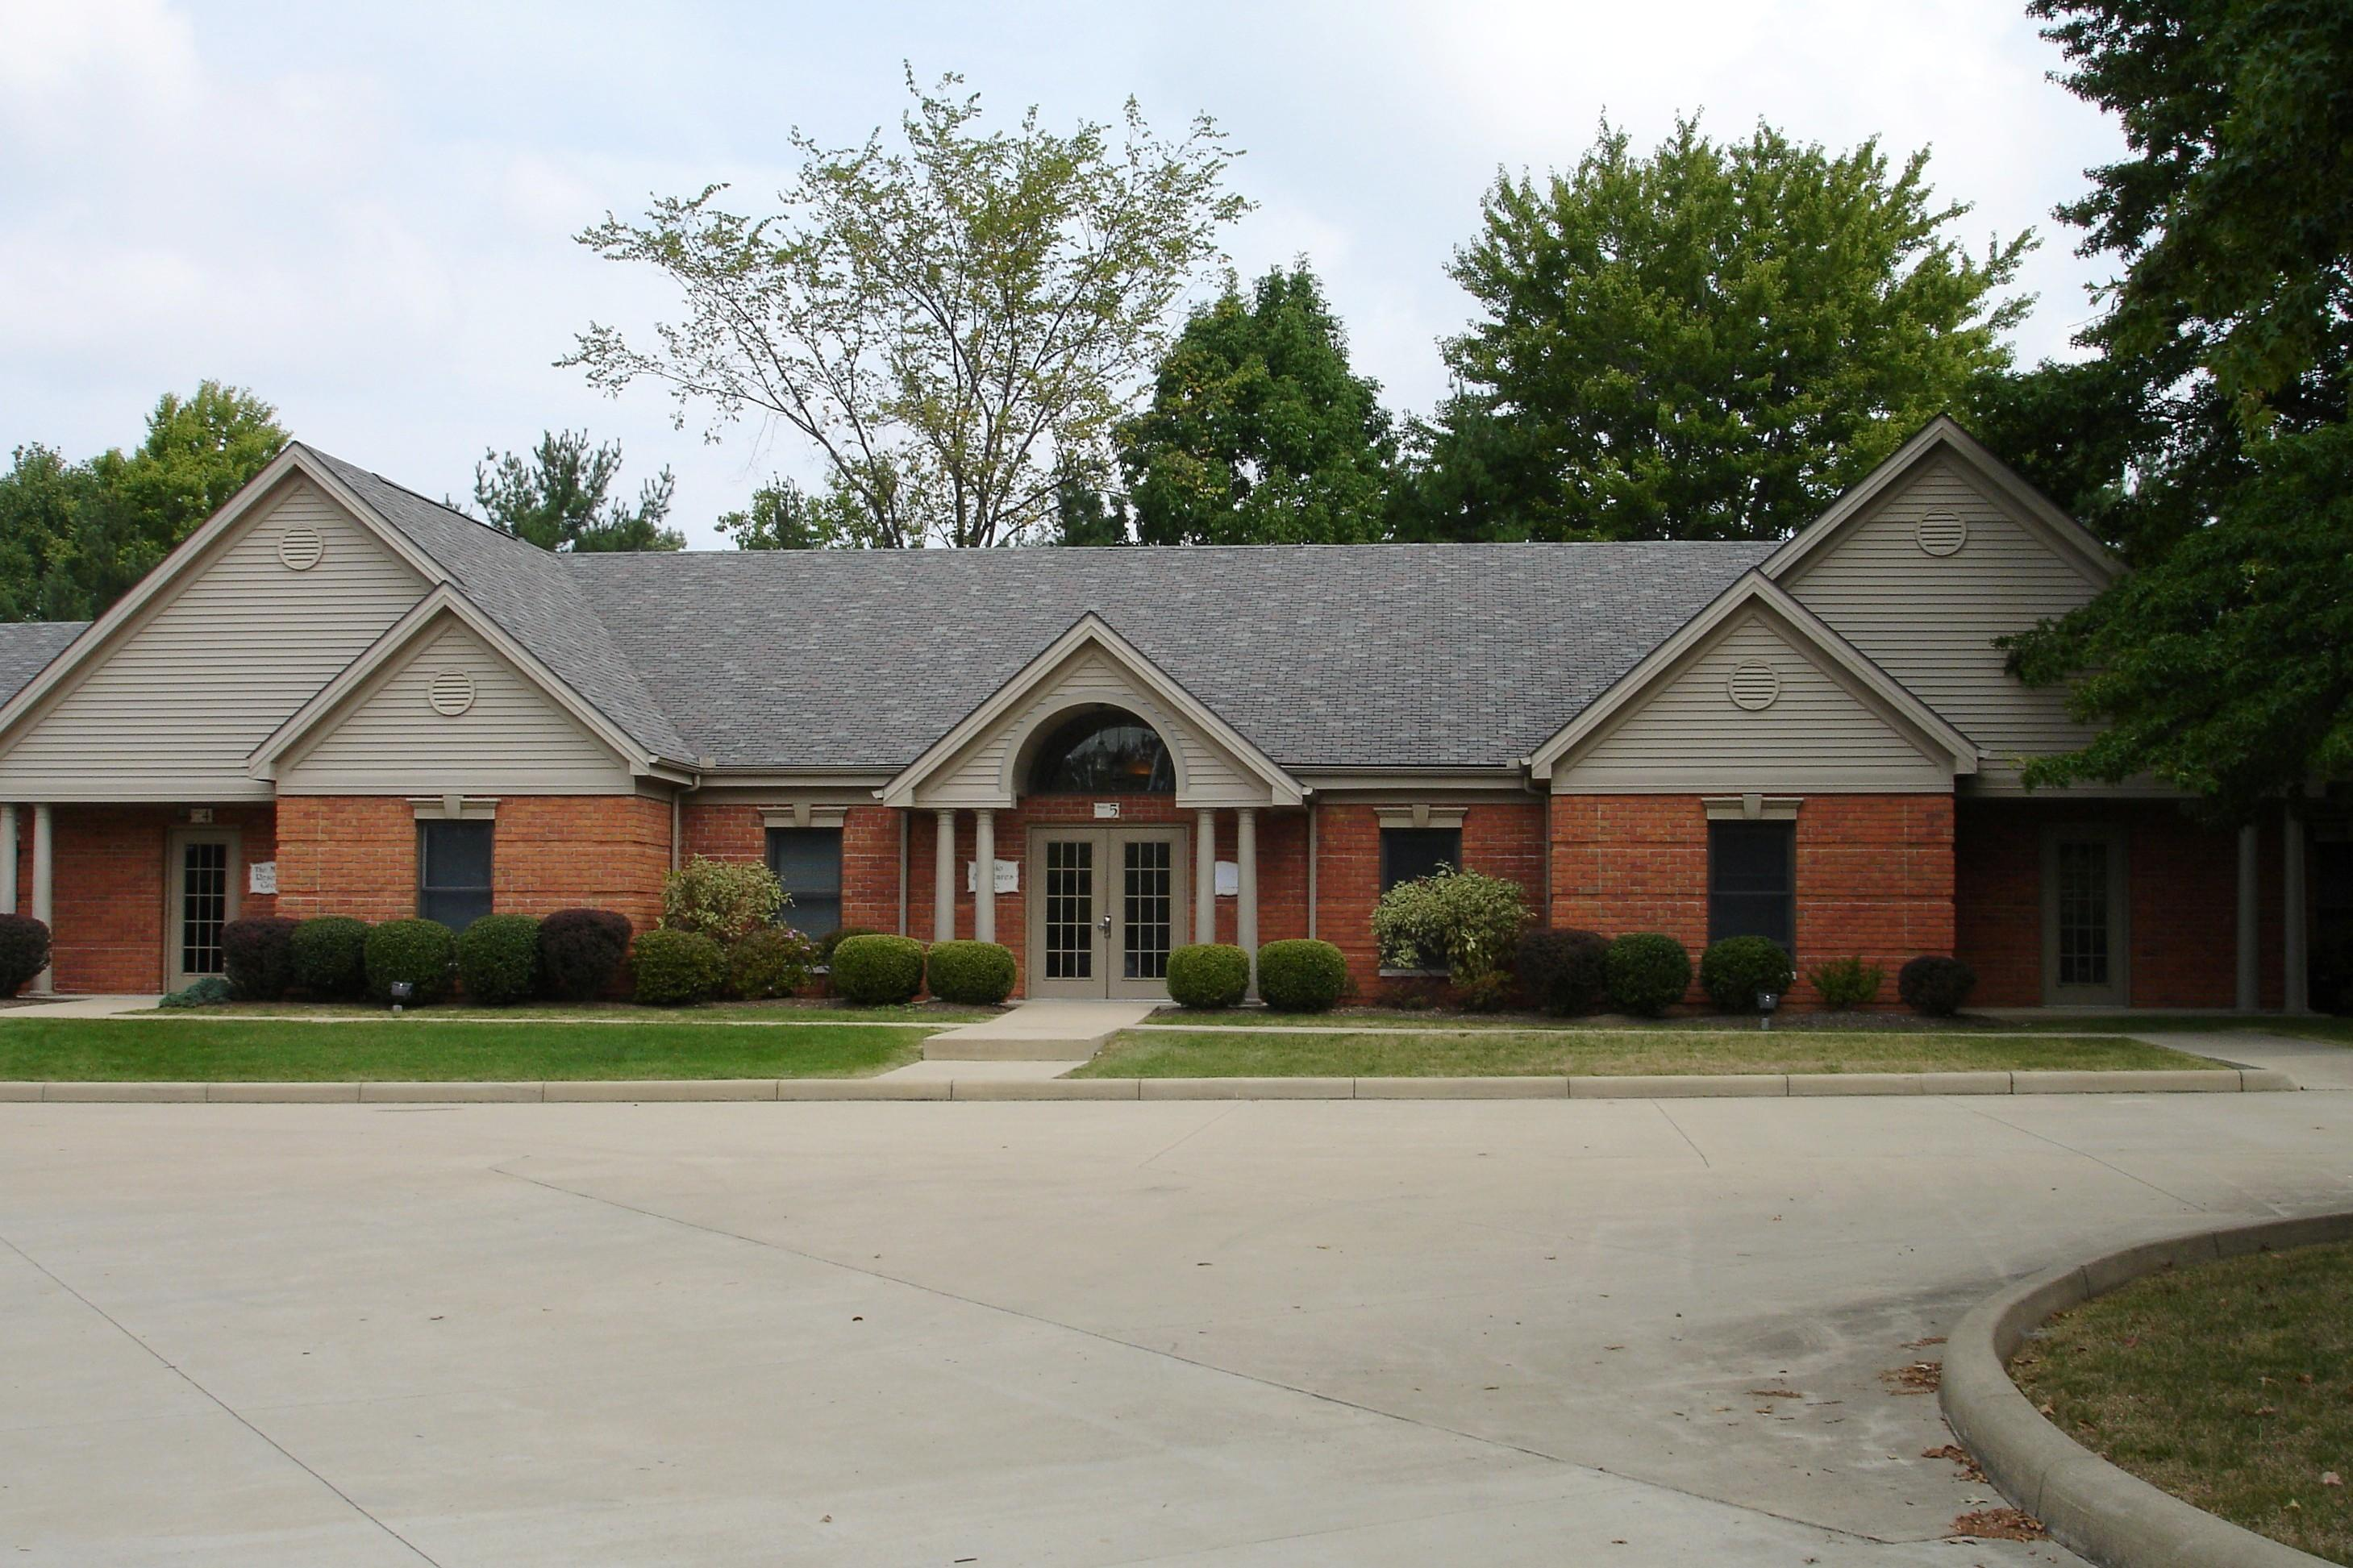 Canfield Administrative Office